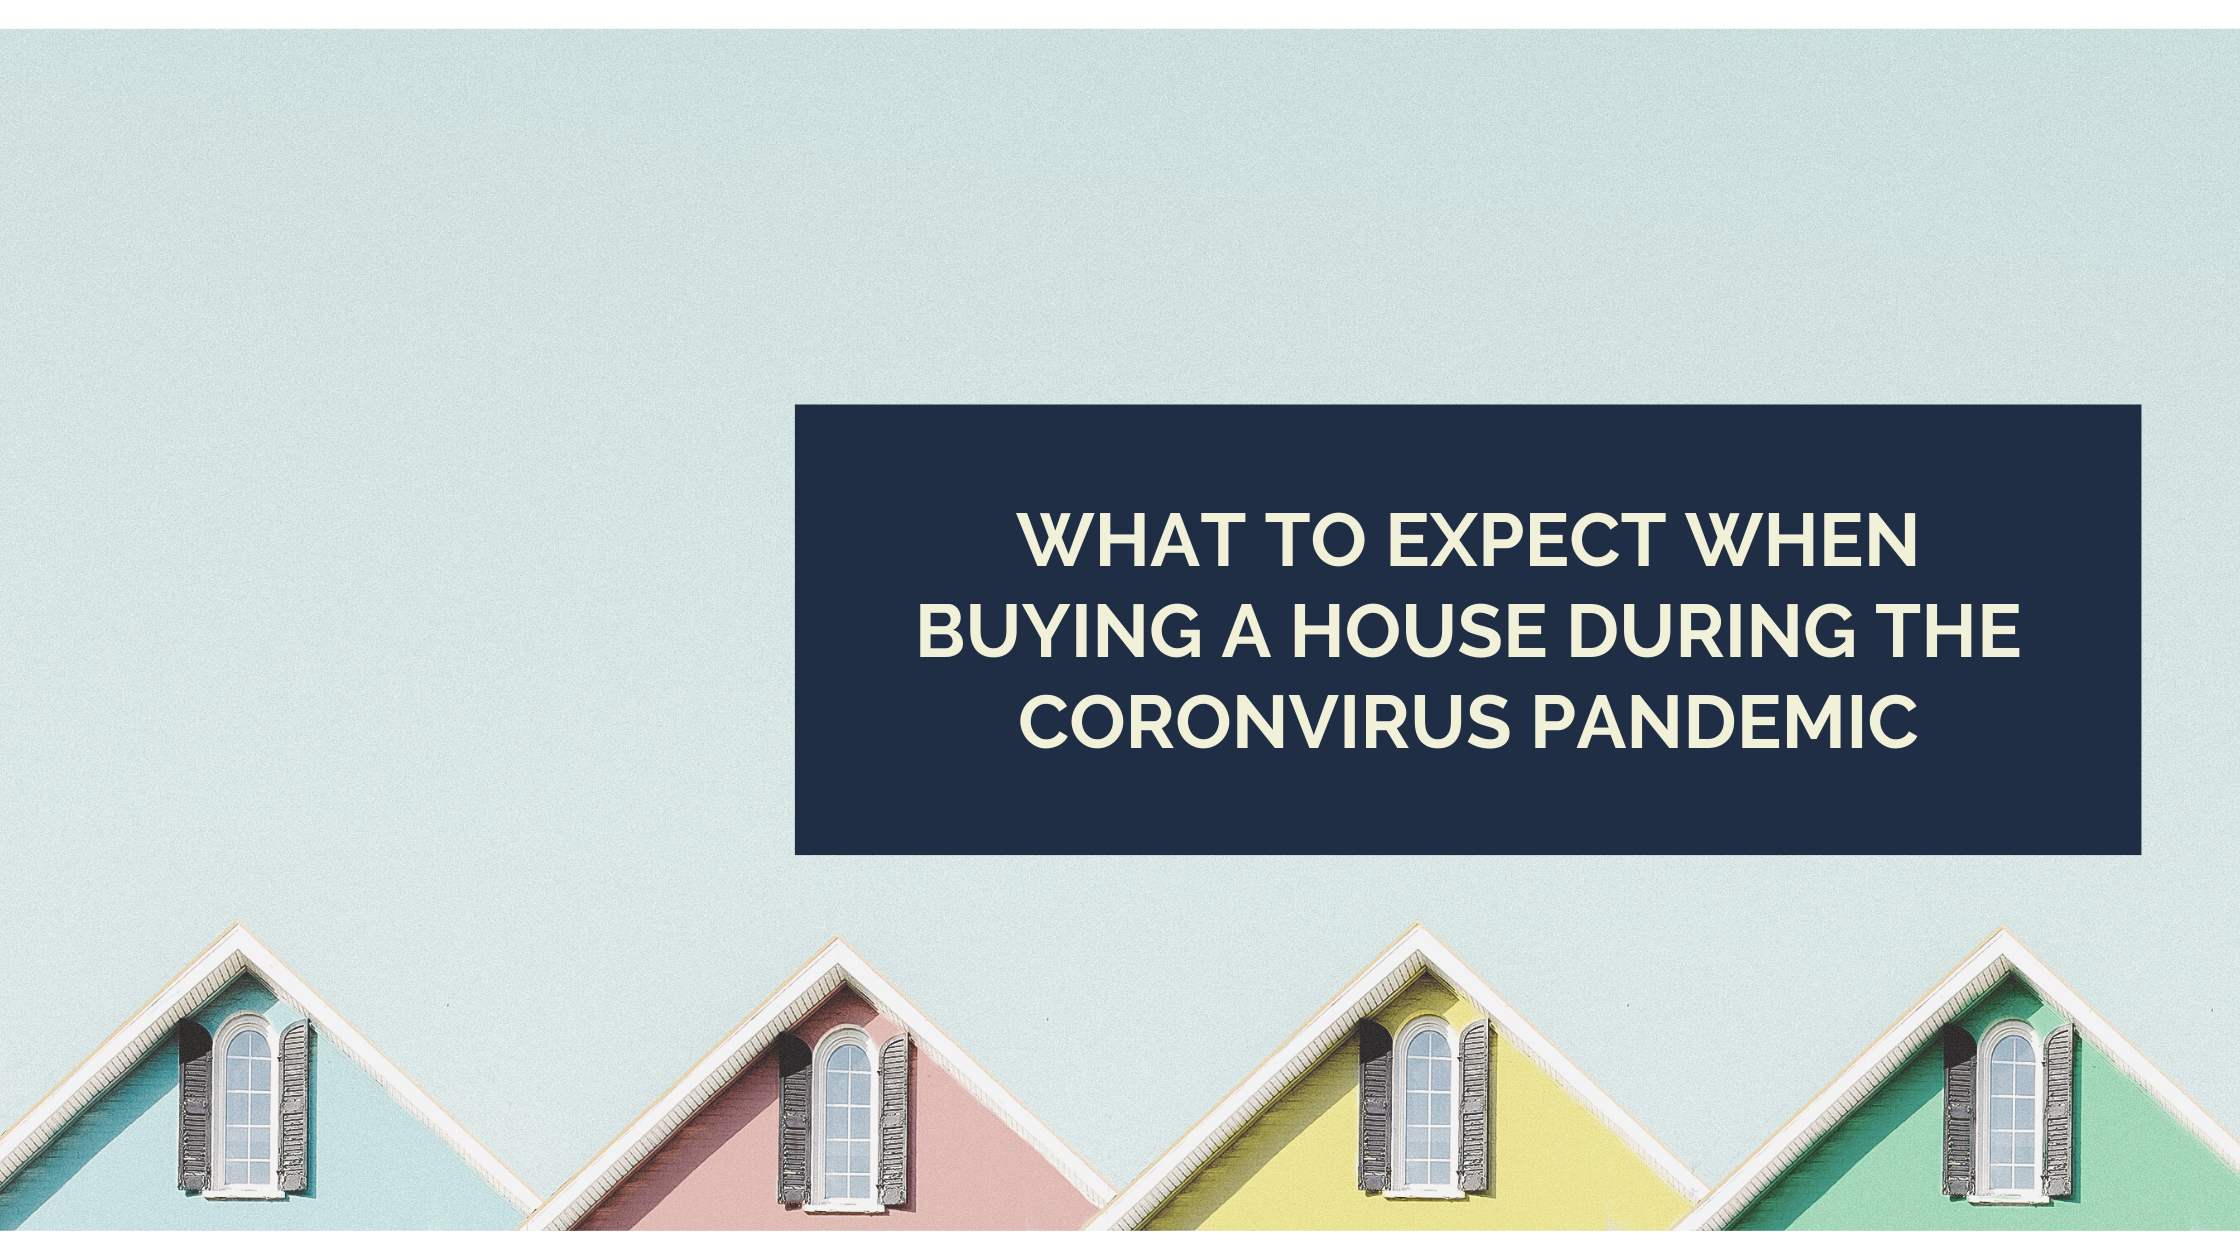 What to Expect When Buying a House During the Coronvirus Pandemic